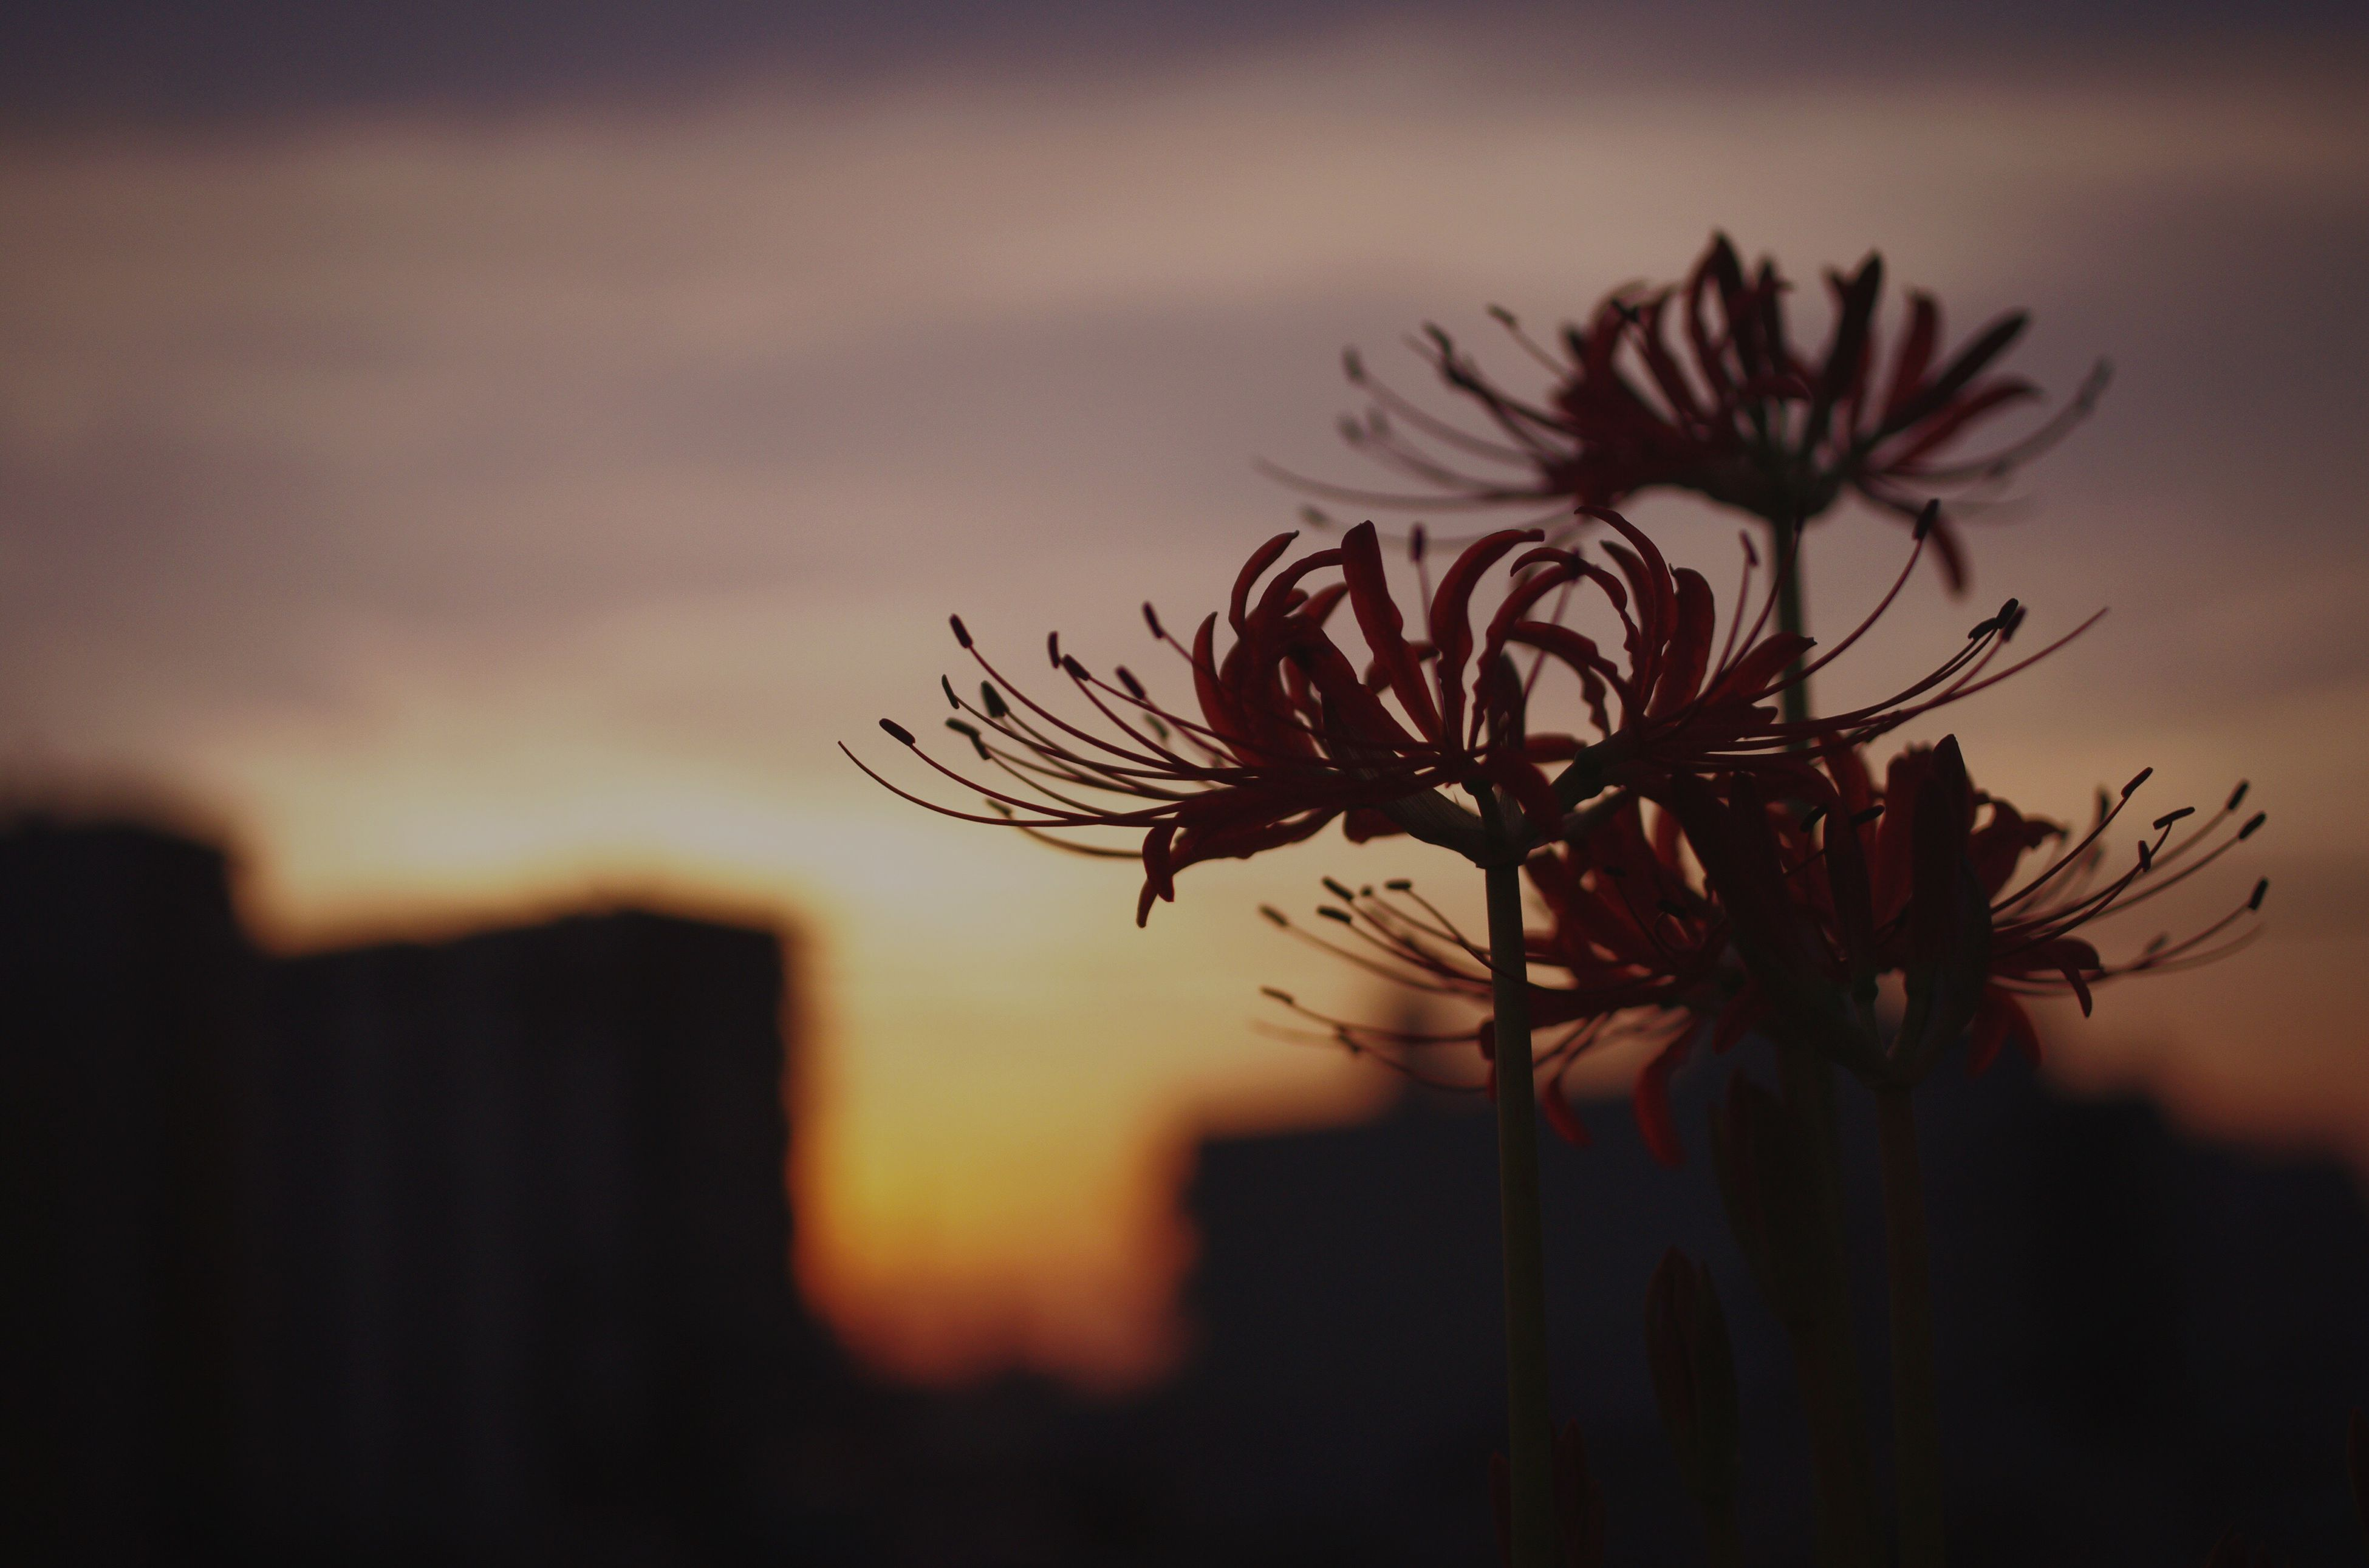 sunset, growth, silhouette, flower, plant, focus on foreground, nature, beauty in nature, close-up, sky, fragility, stem, freshness, dusk, leaf, outdoors, no people, orange color, flower head, selective focus